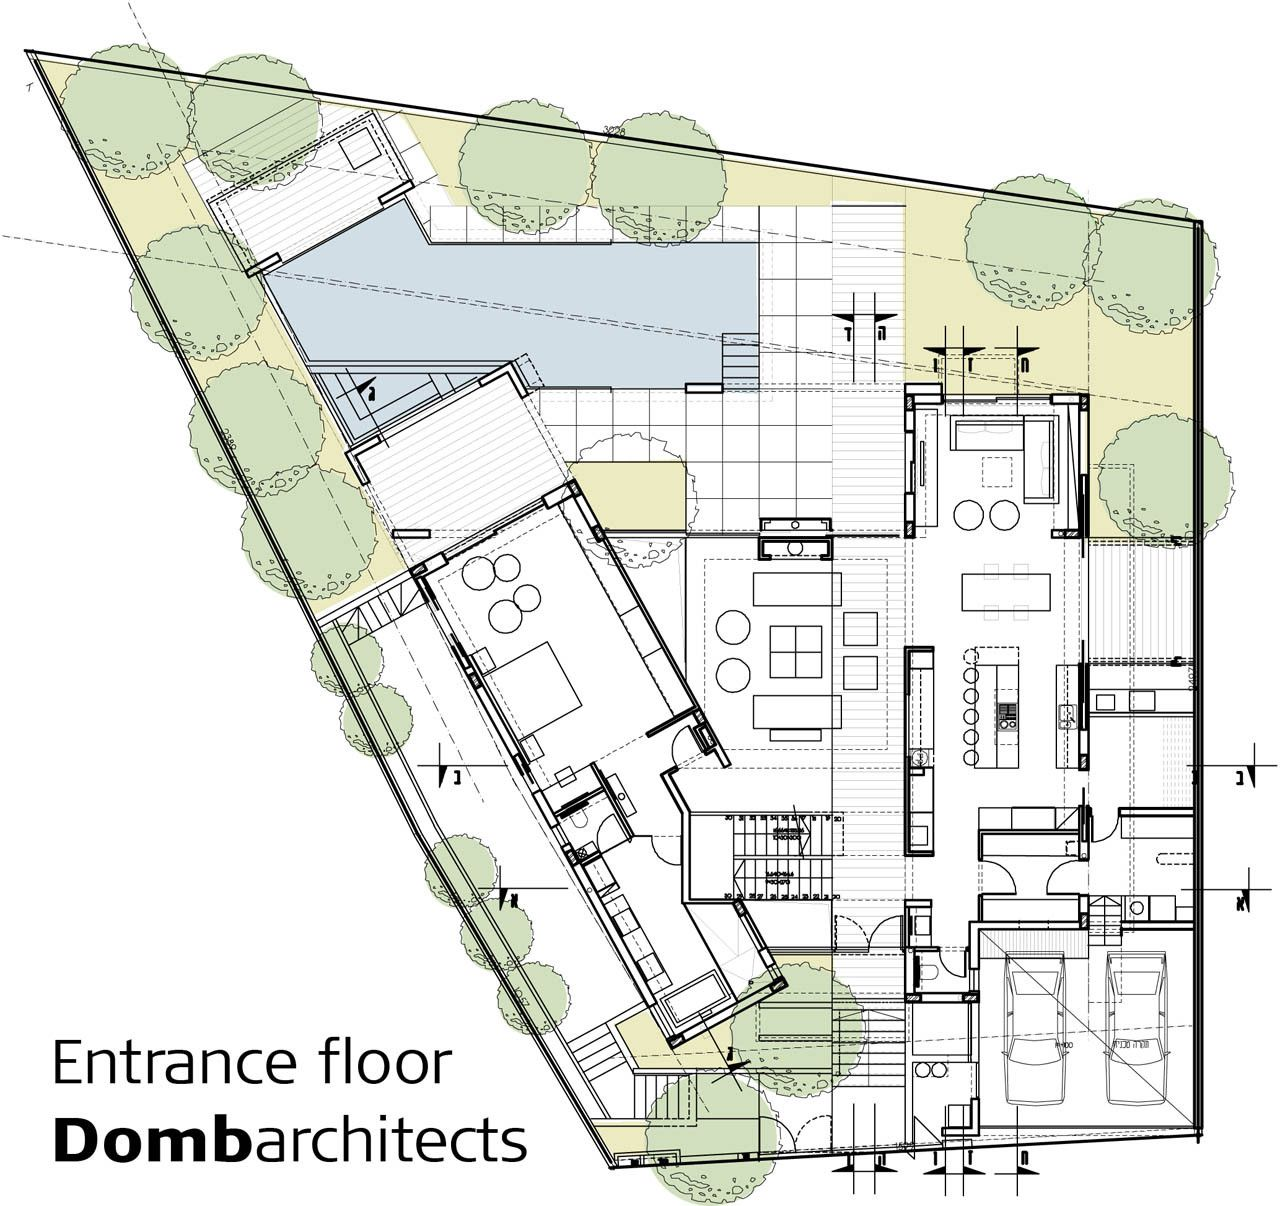 Gallery Of Dg House Domb Architects 14 Architectural Floor Plans Architecture Plan Architectural Design House Plans